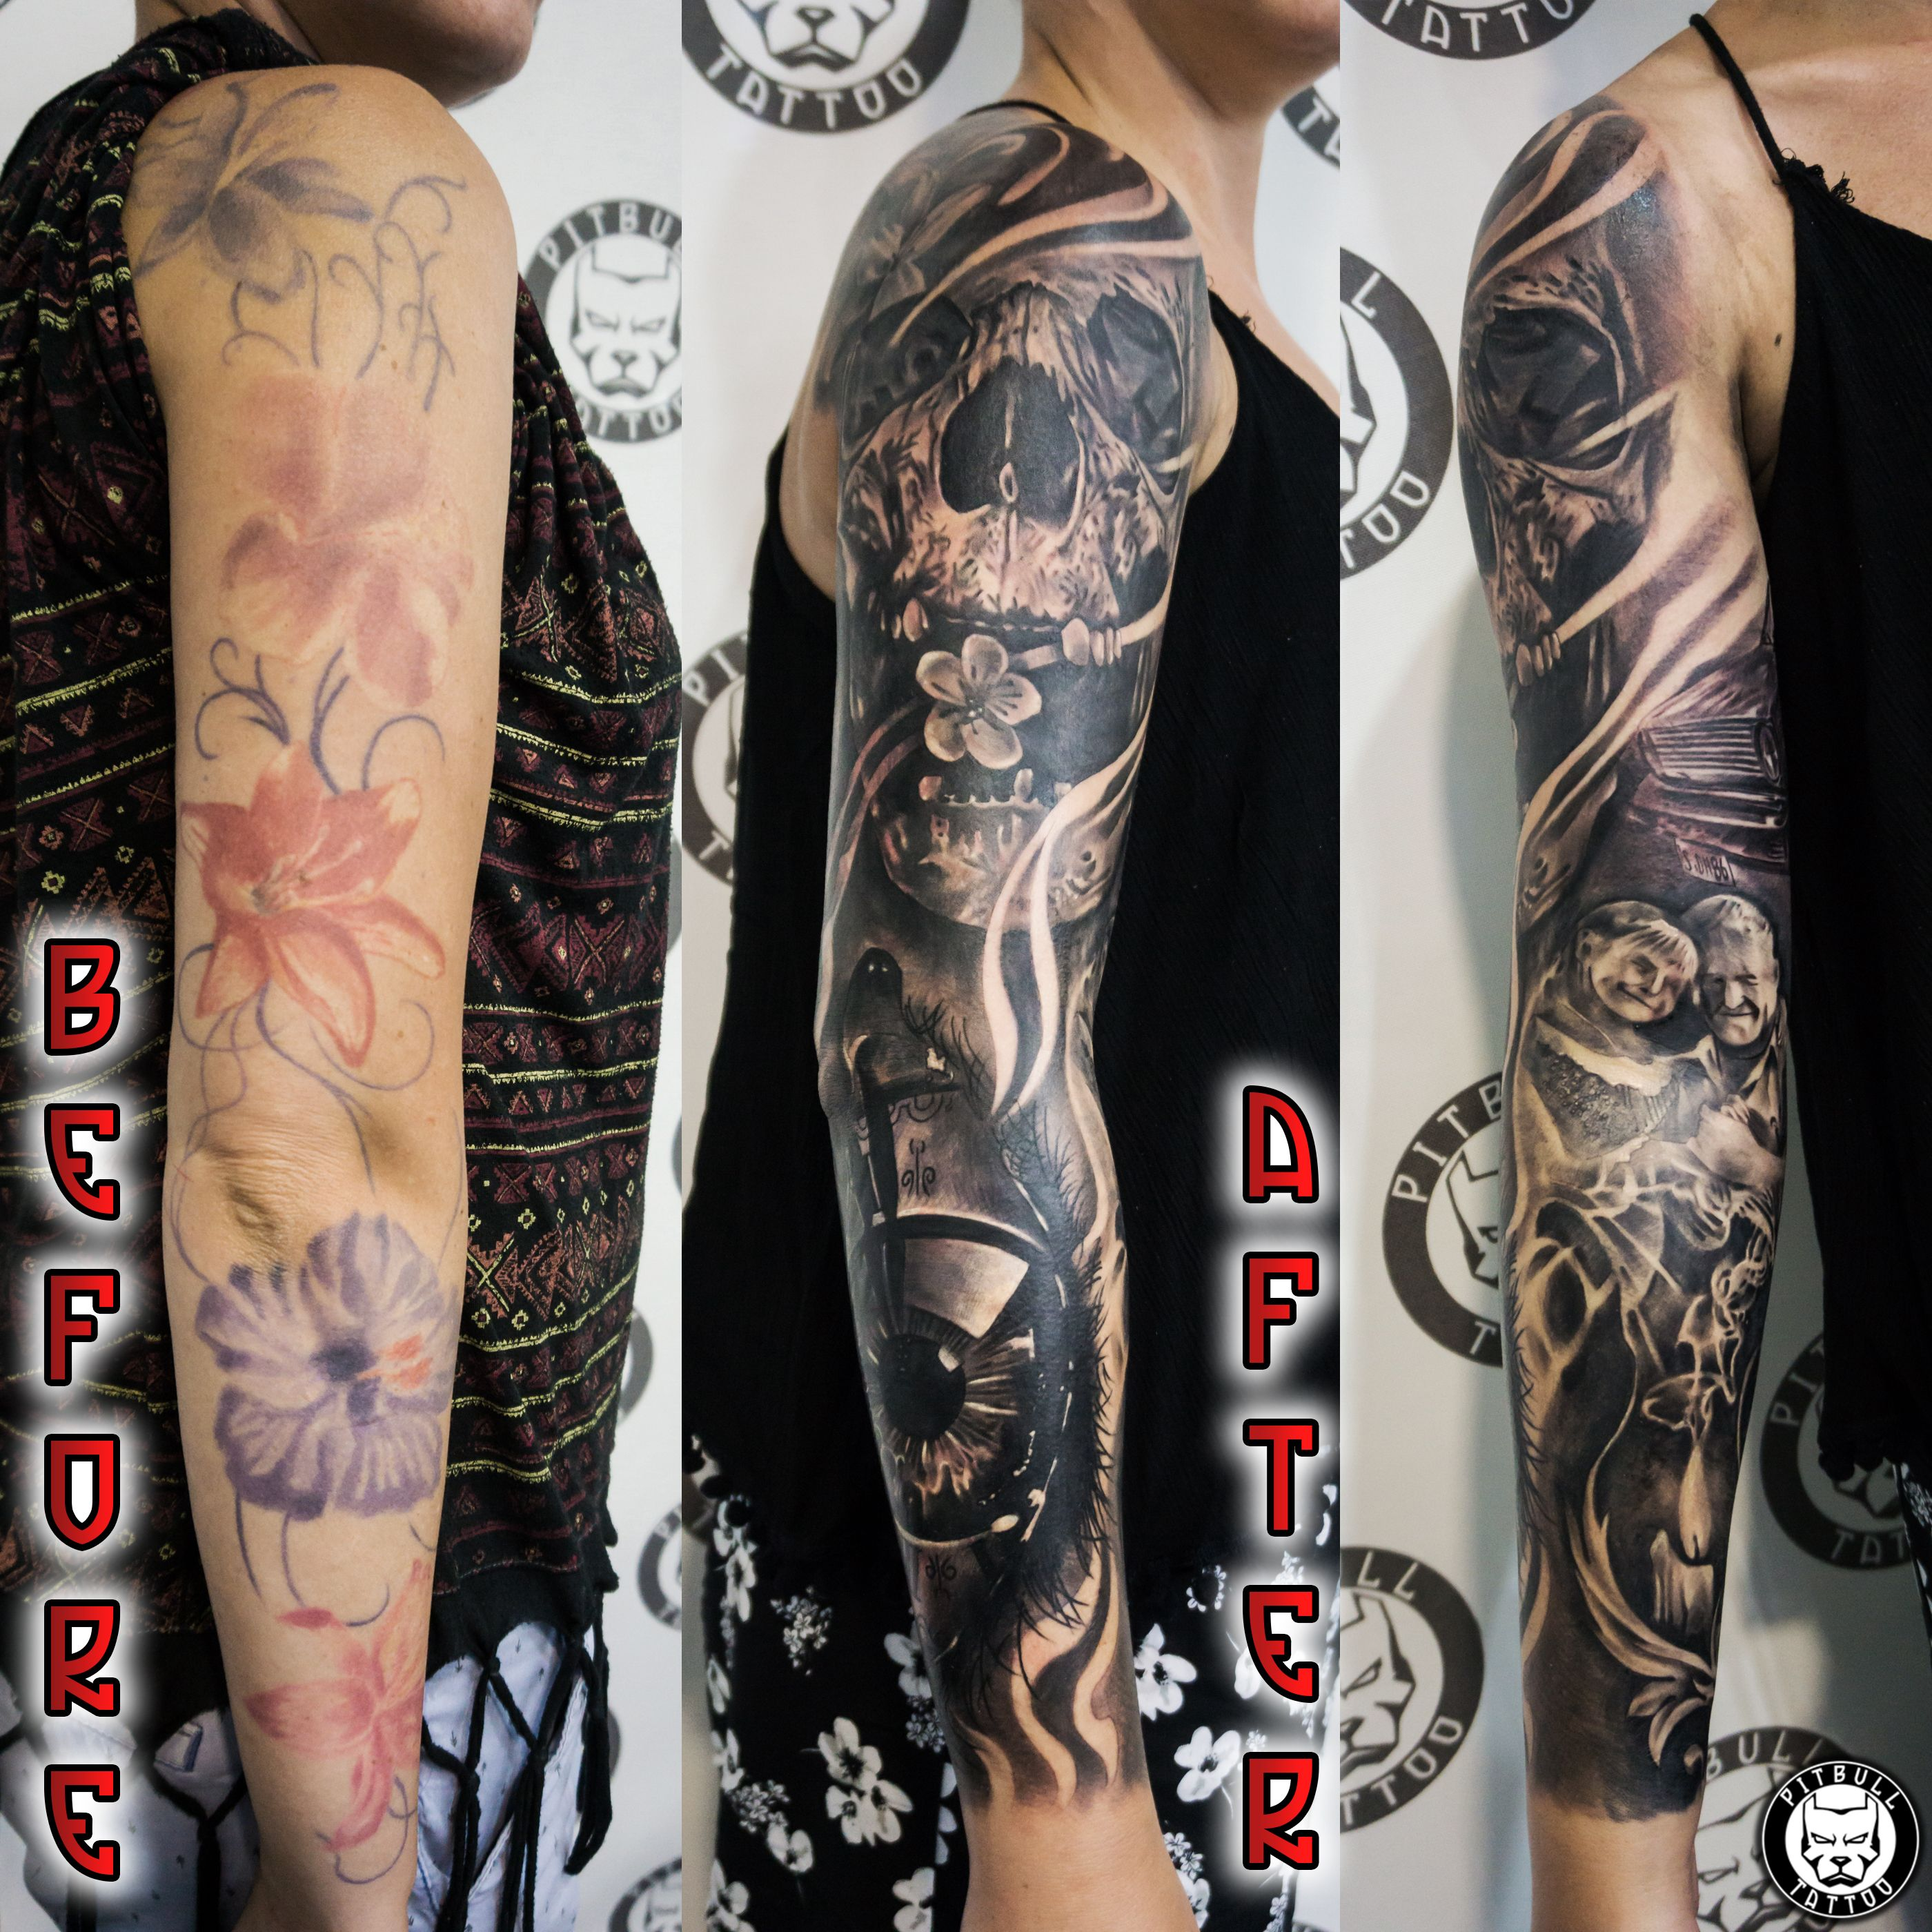 7637415ba2d38 PATONG TATTOO STUDIO Cover up arm sleeve Tattoo, Black and Grey. Pitbull Tattoo  Patong Beach - Best Tattoo shop in Thailand CONTACT US ...